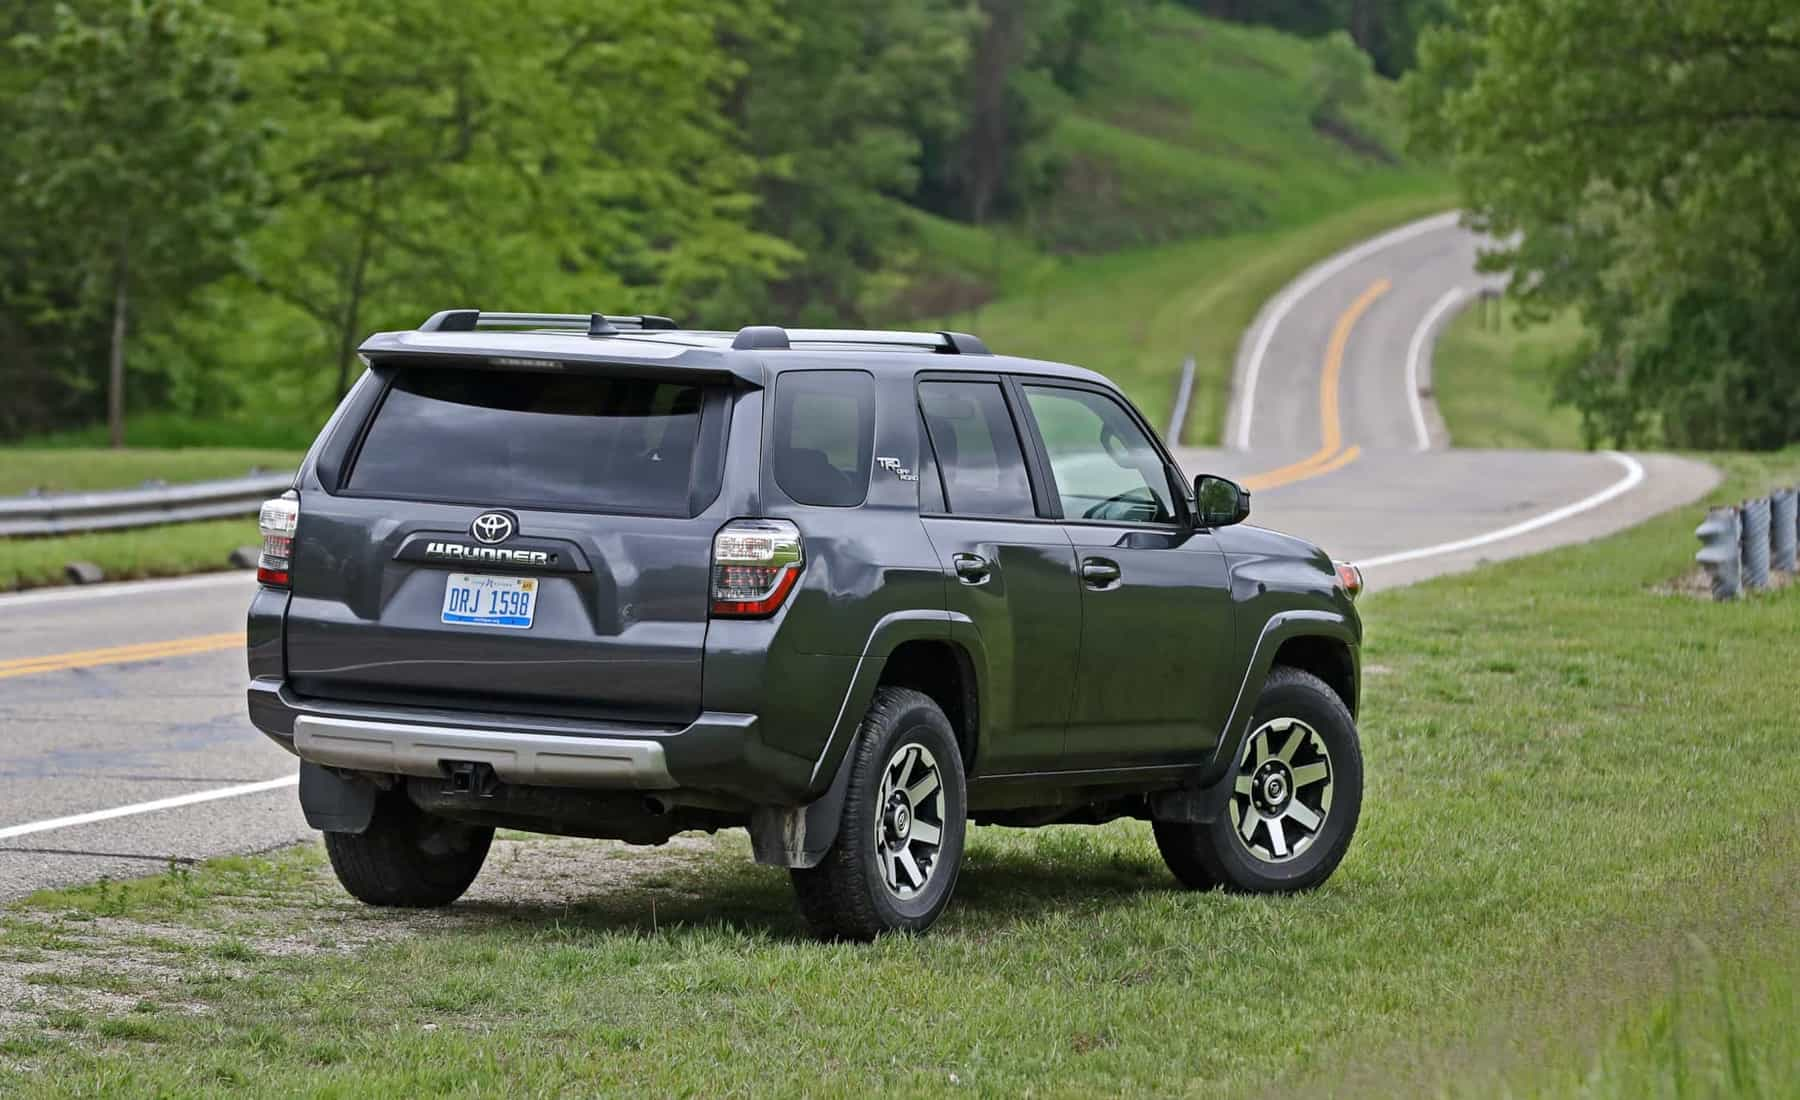 2017 Toyota 4Runner TRD Off Road 4WD Exterior Rear (View 34 of 40)